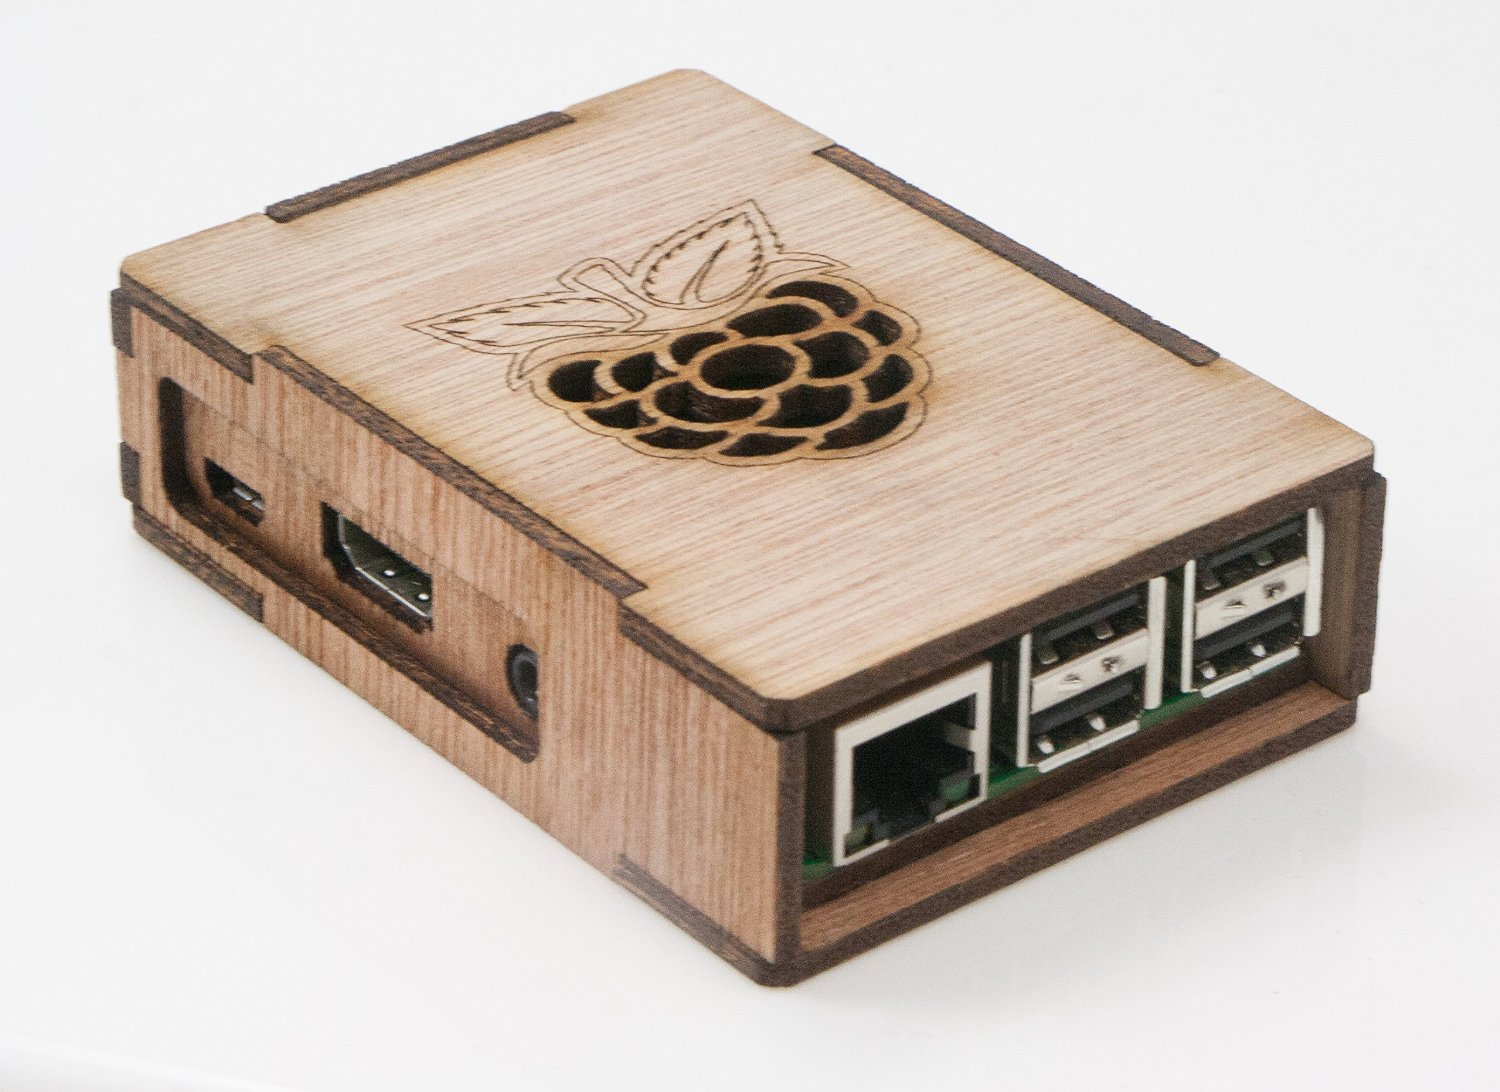 Best Cases for Raspberry Pi (9)